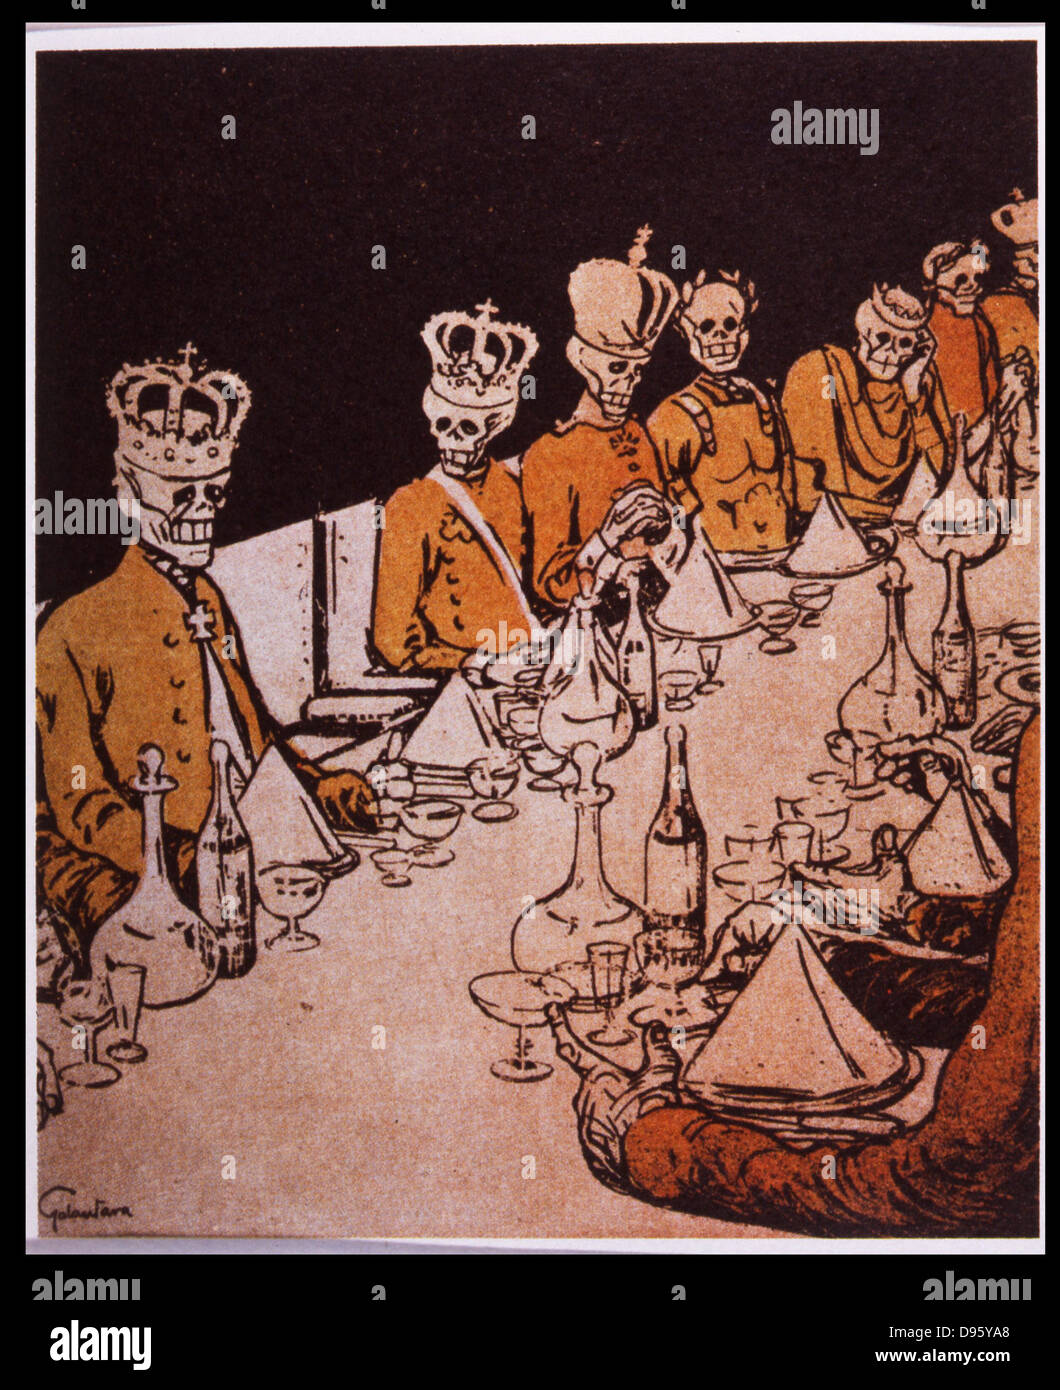 Forecast of the future of European monarchs after 1905 Revolution in Russia.  Cartoon from 'L'Assiette au - Stock Image